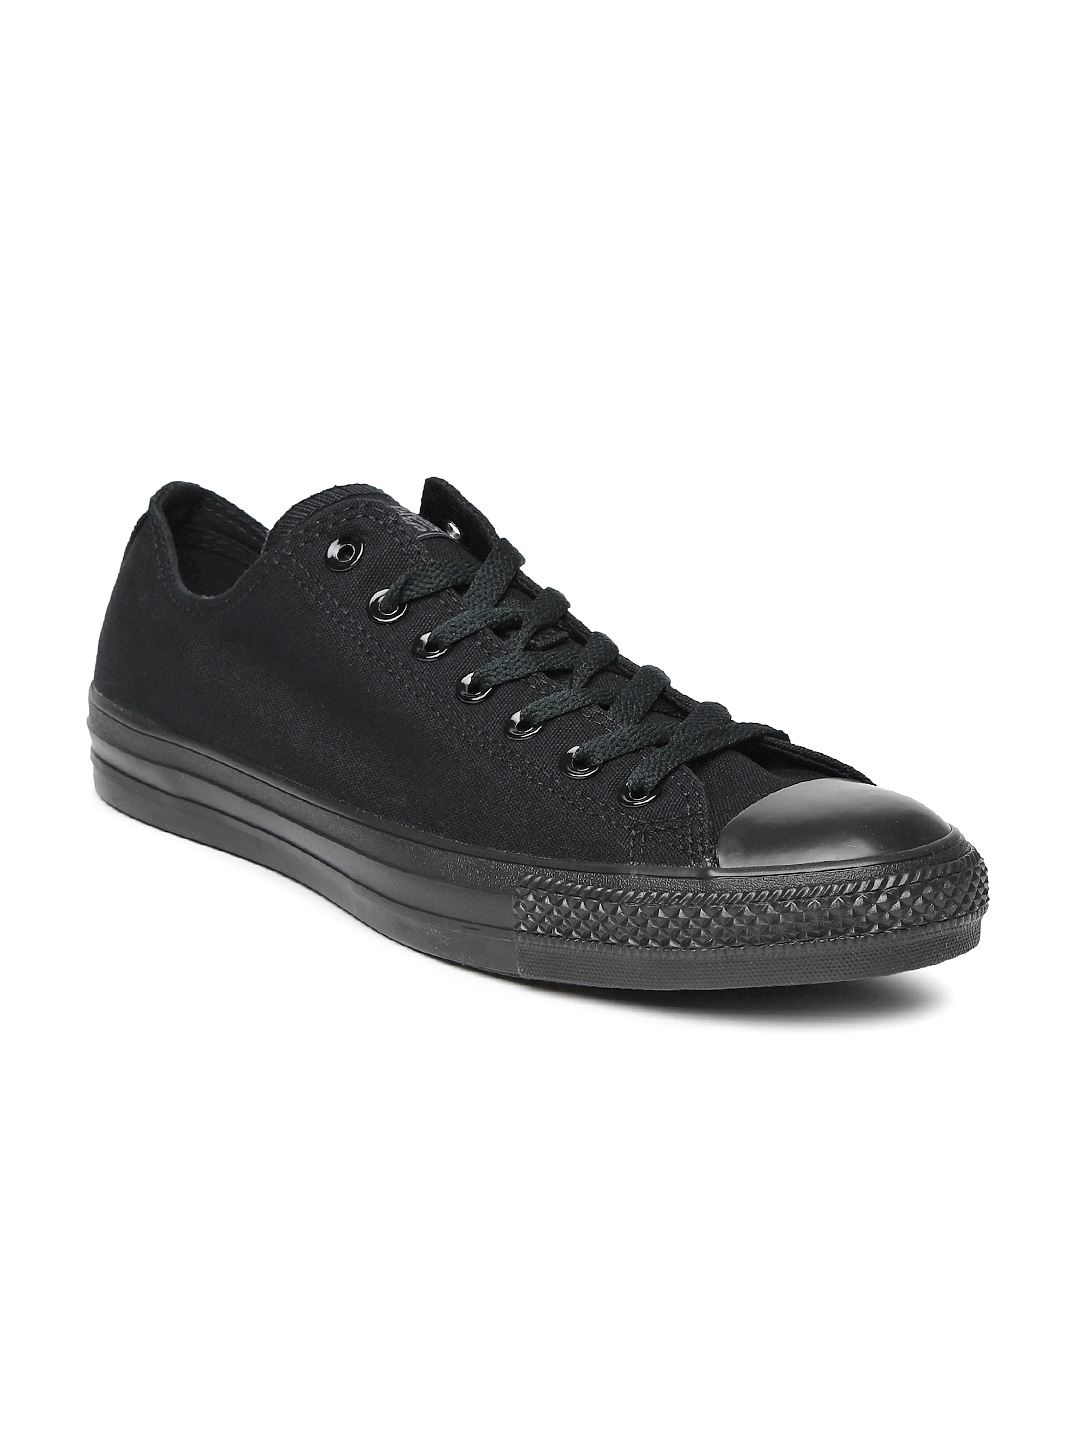 e9de64b2b74 Converse Shoes - Buy Converse Canvas Shoes   Sneakers Online